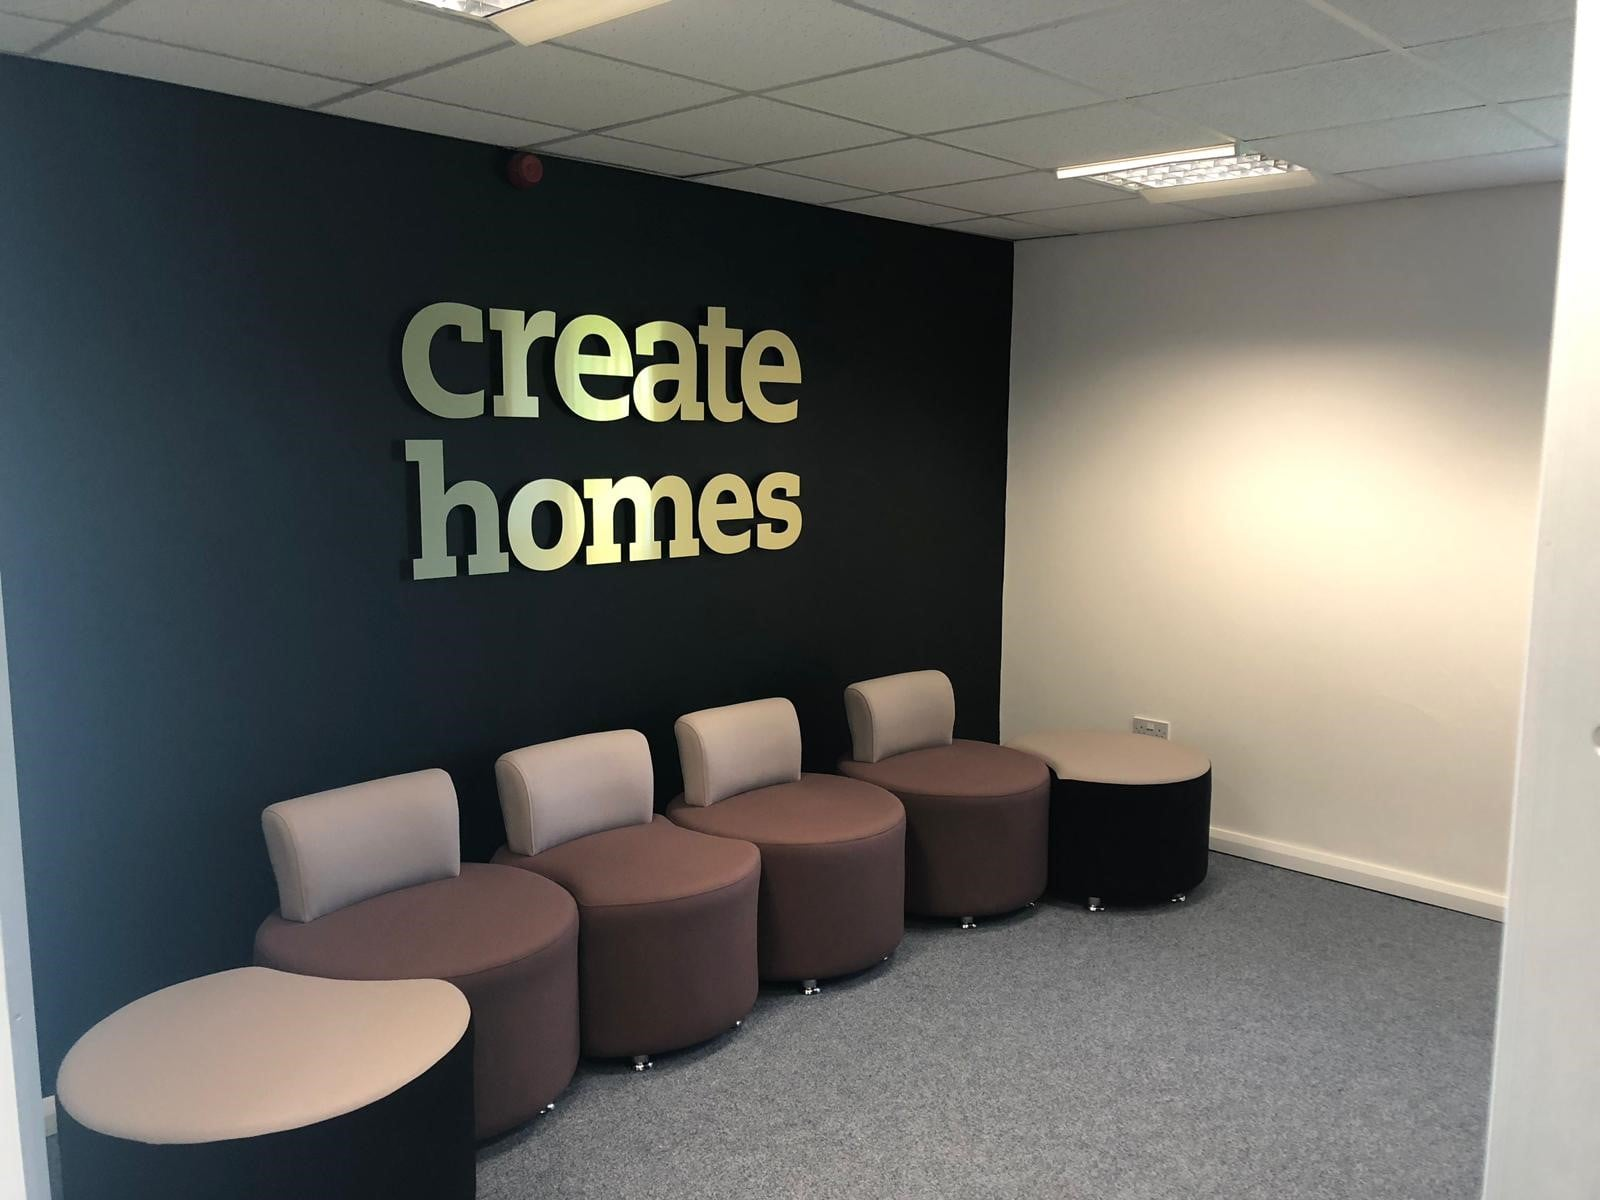 Create Homes Waiting Room with Create Homes gold signage placed above seating